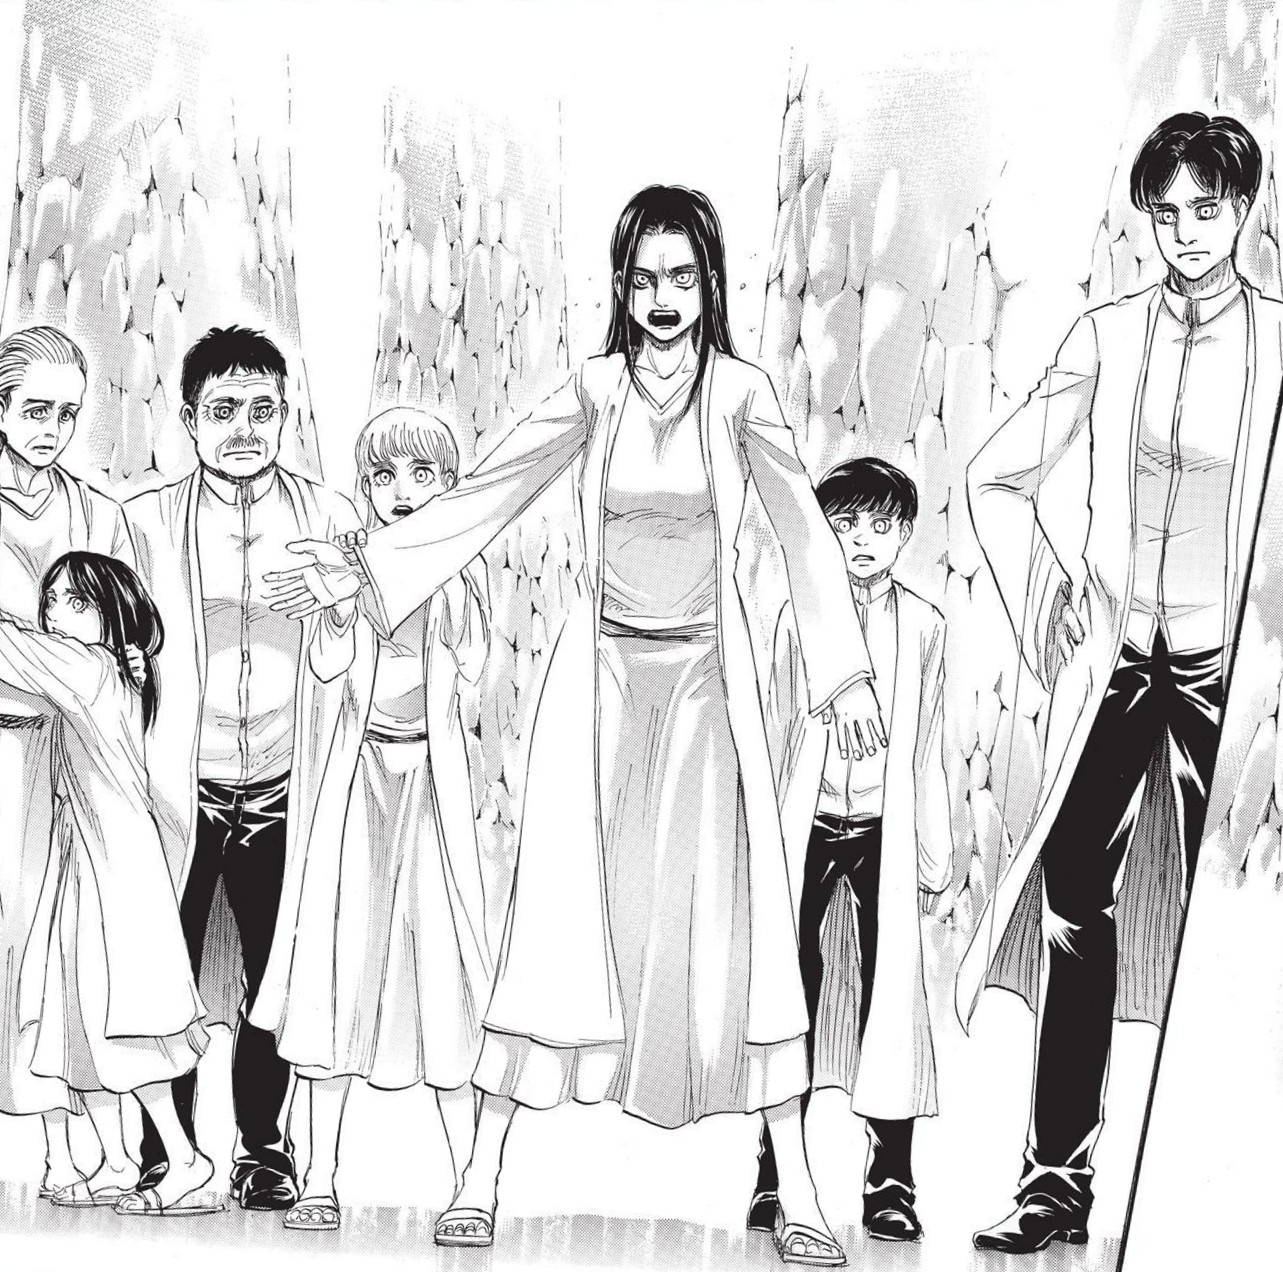 Reiss family | Attack on Titan Wiki | FANDOM powered by Wikia